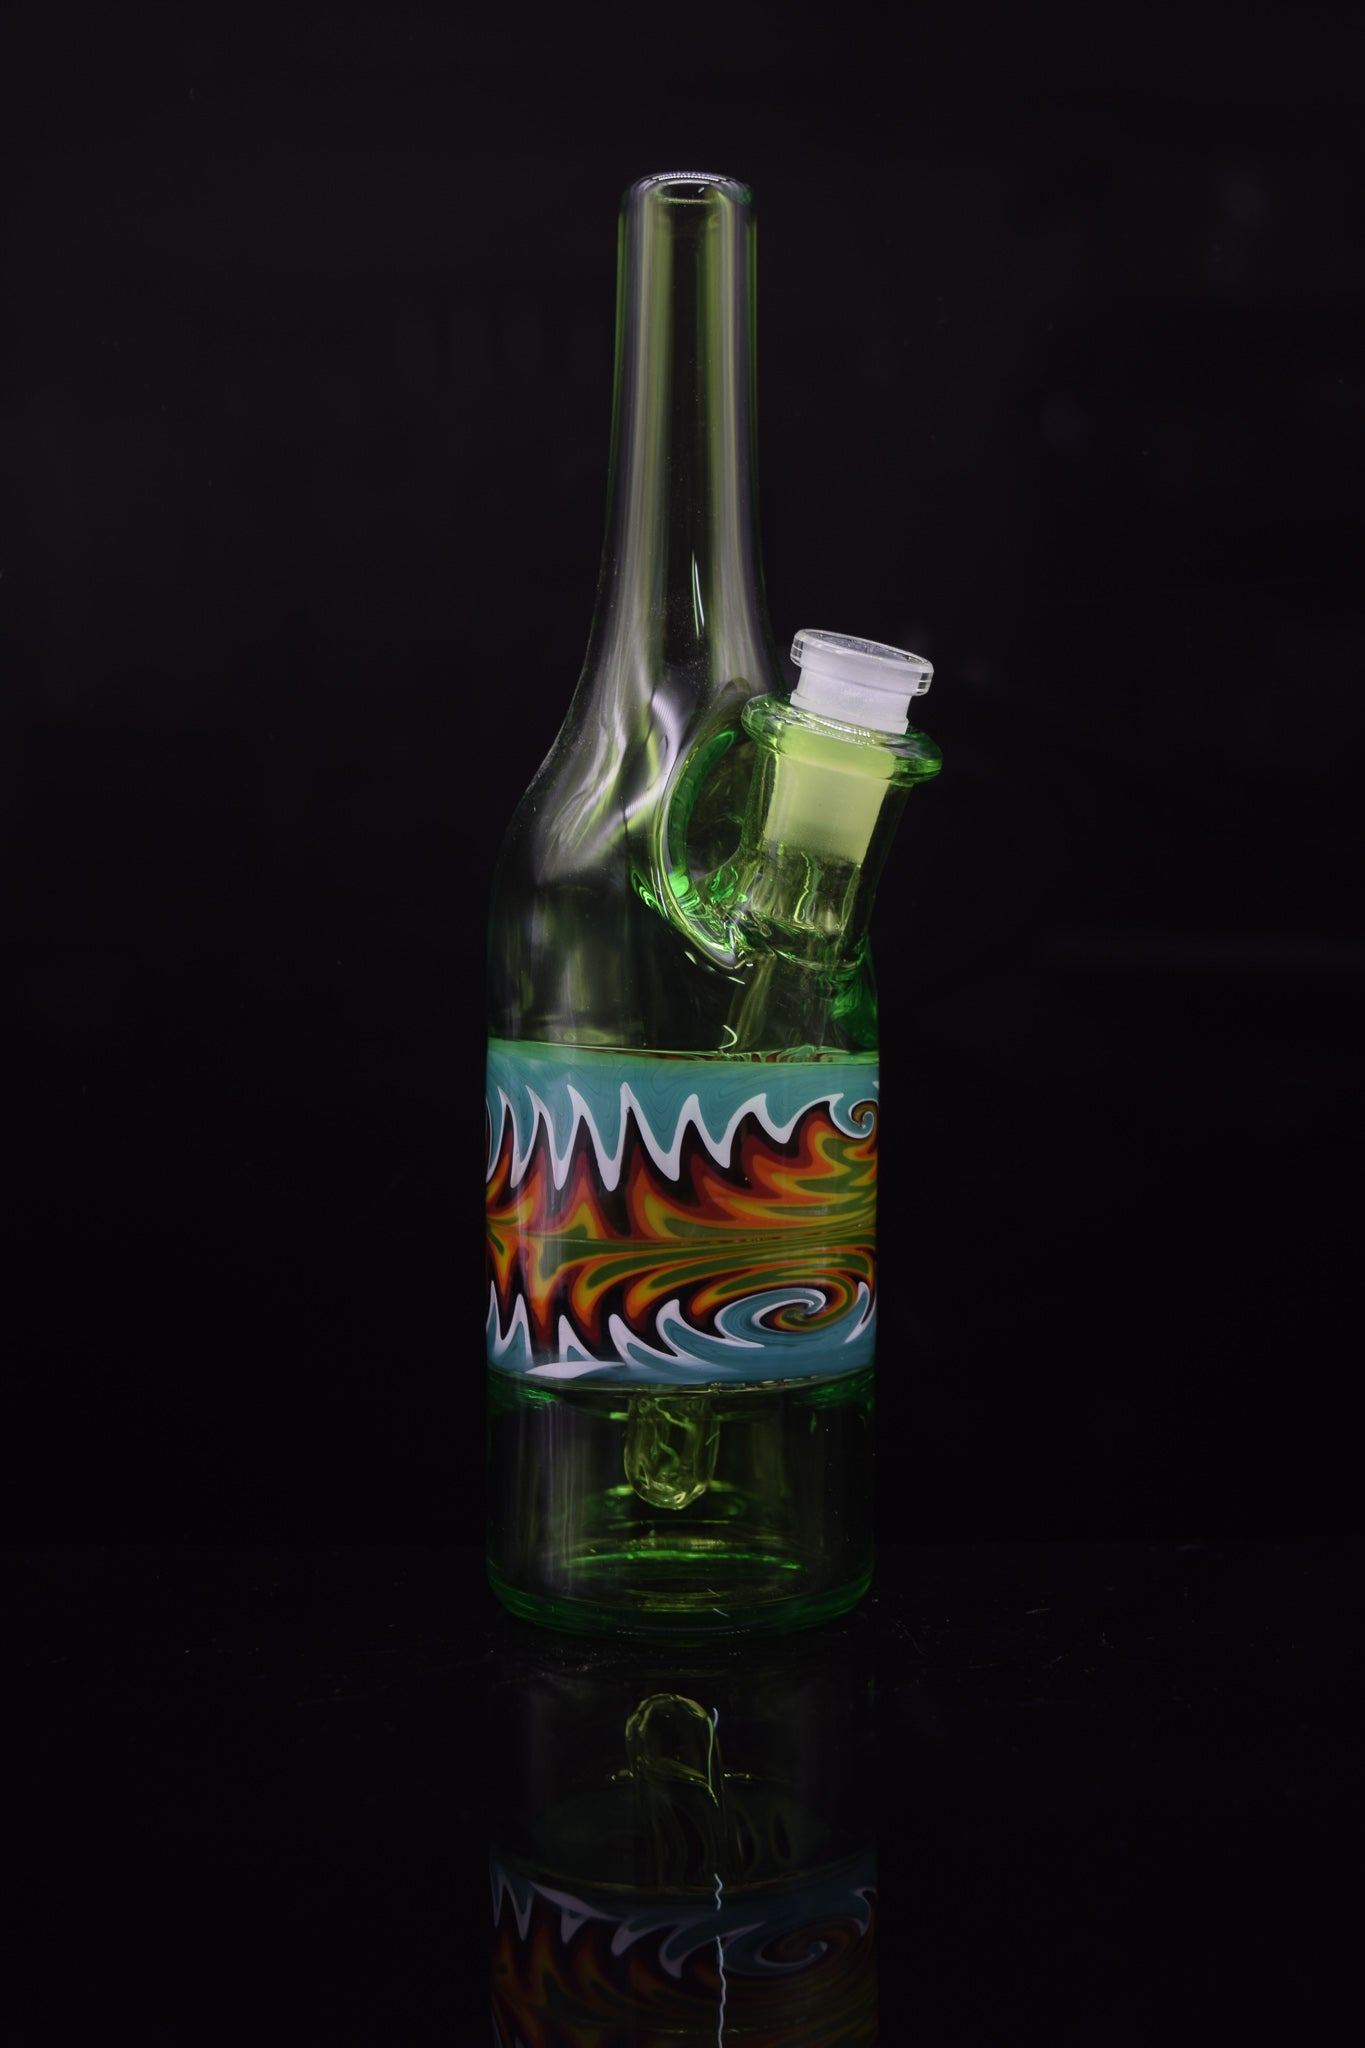 Wig-Wag Saki Bottle